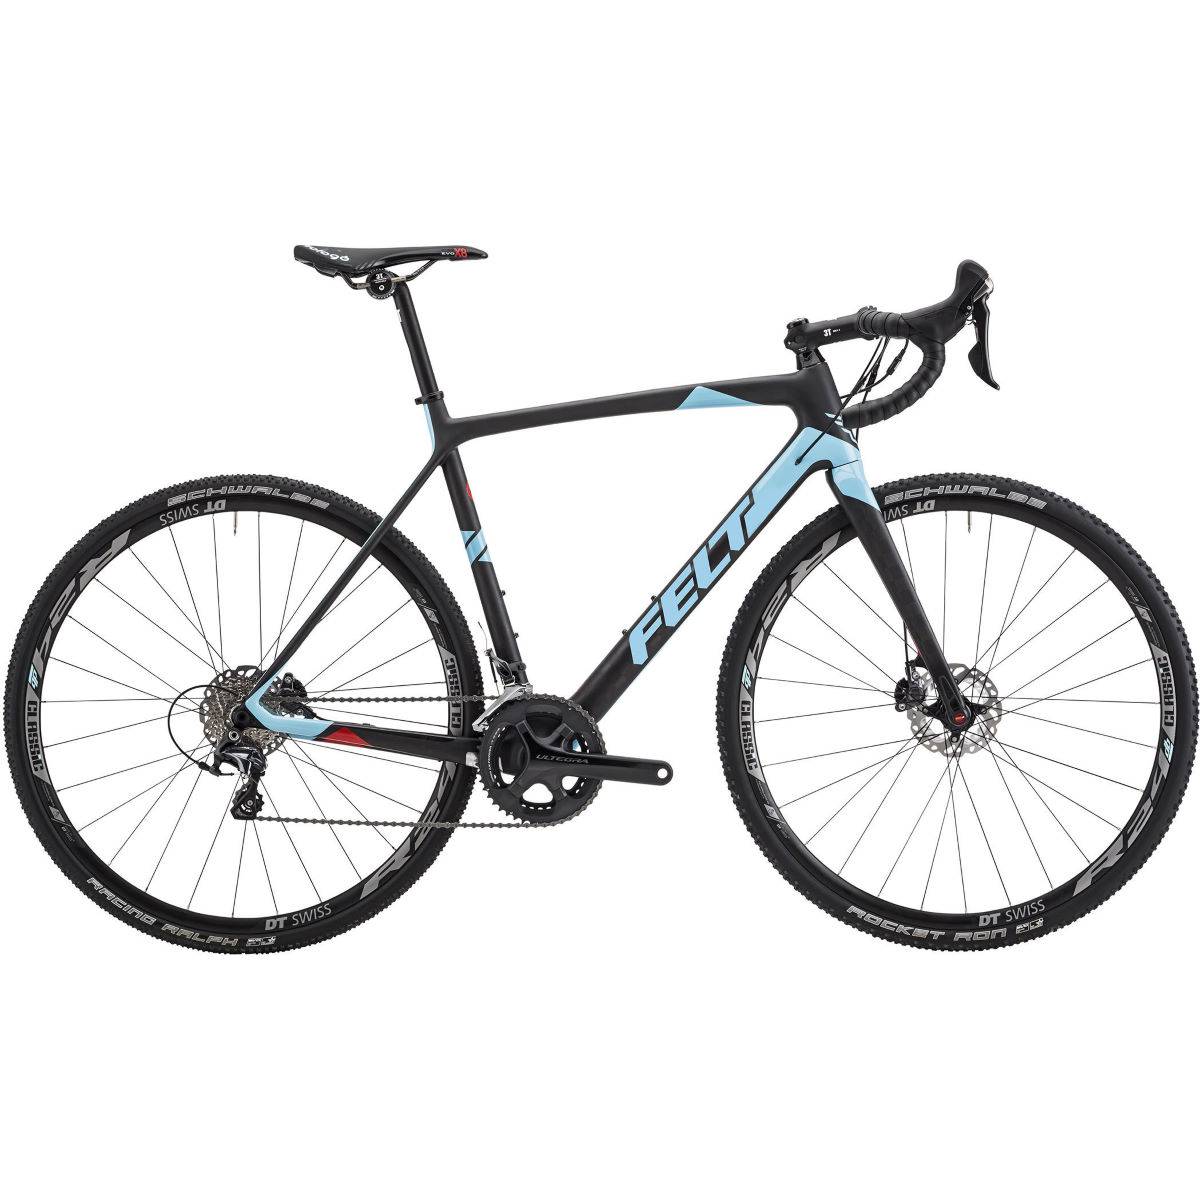 Vélo de cyclocross Felt F3x (Ultegra, 2017) - 50cm Stock Bike